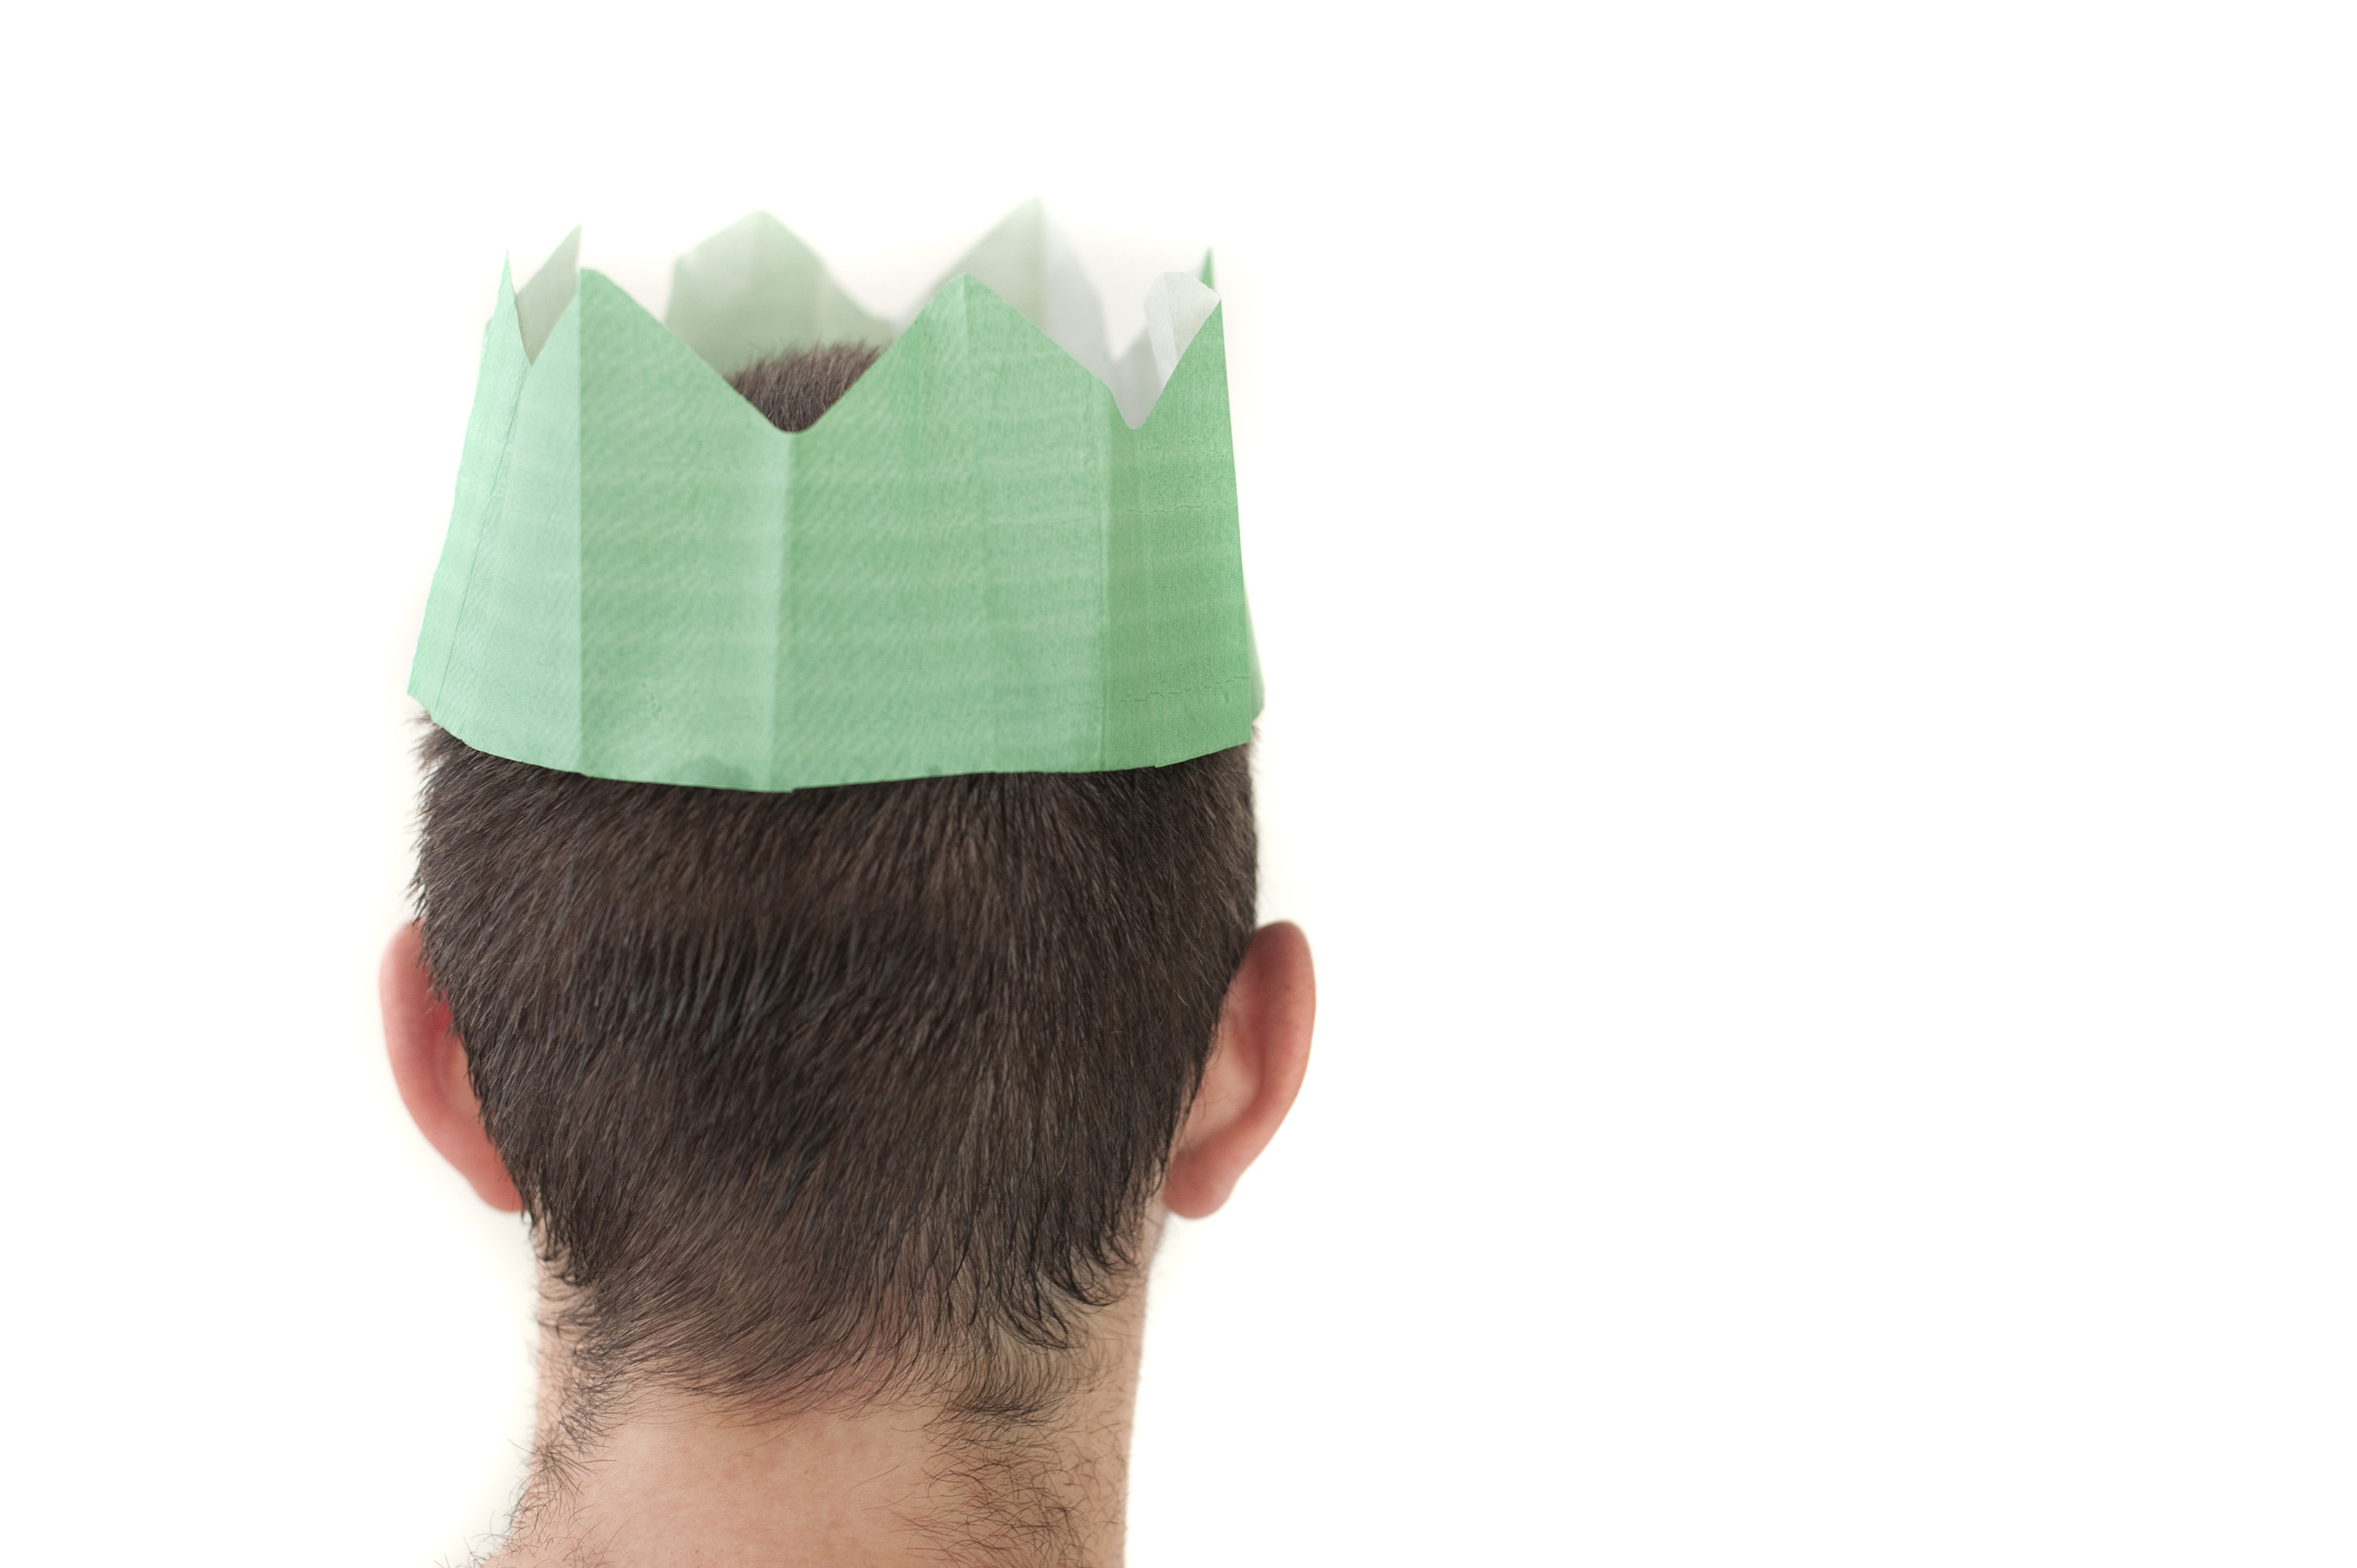 a man wearing a green coloured christmas party hat pictured against a white background